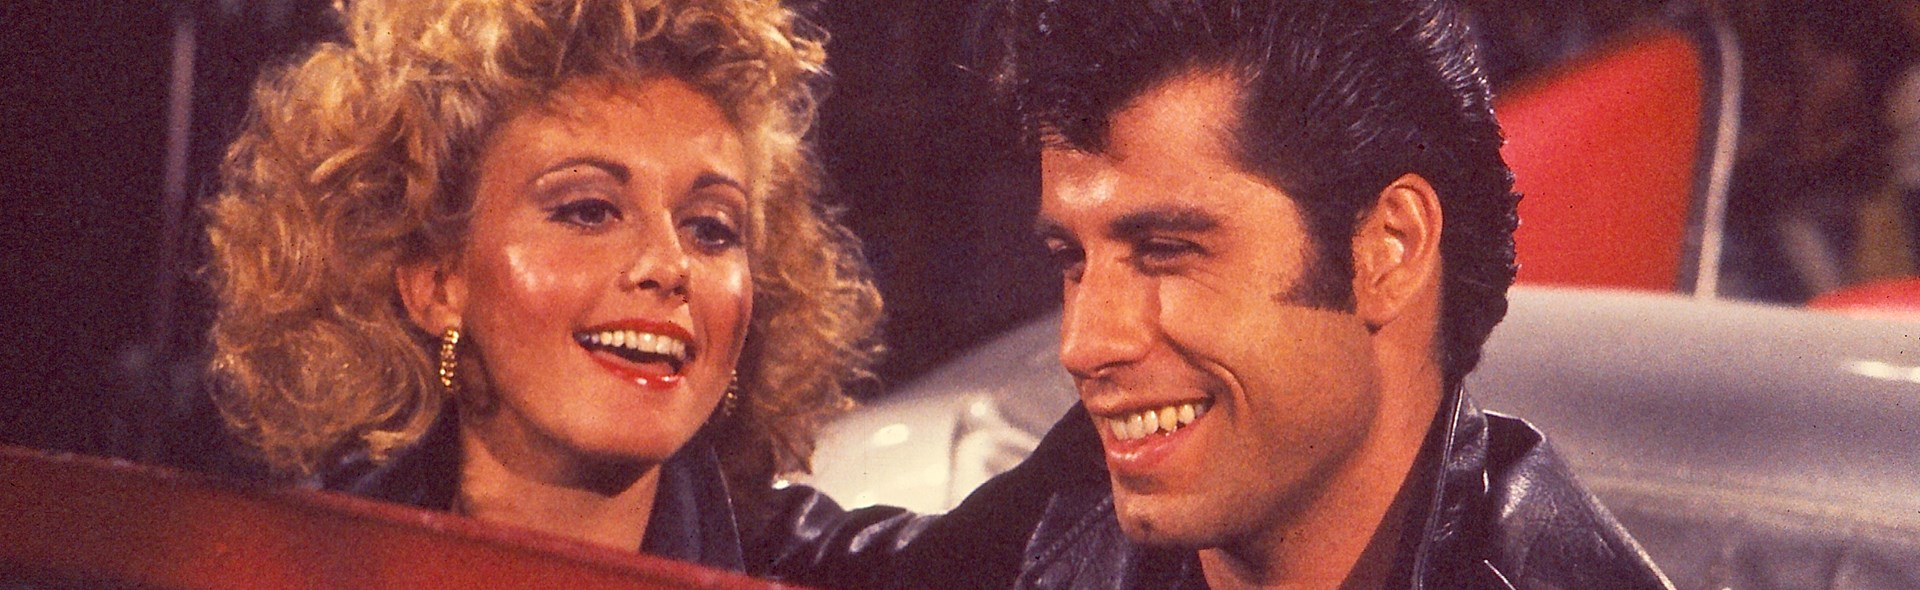 Singalong: Grease (PG)